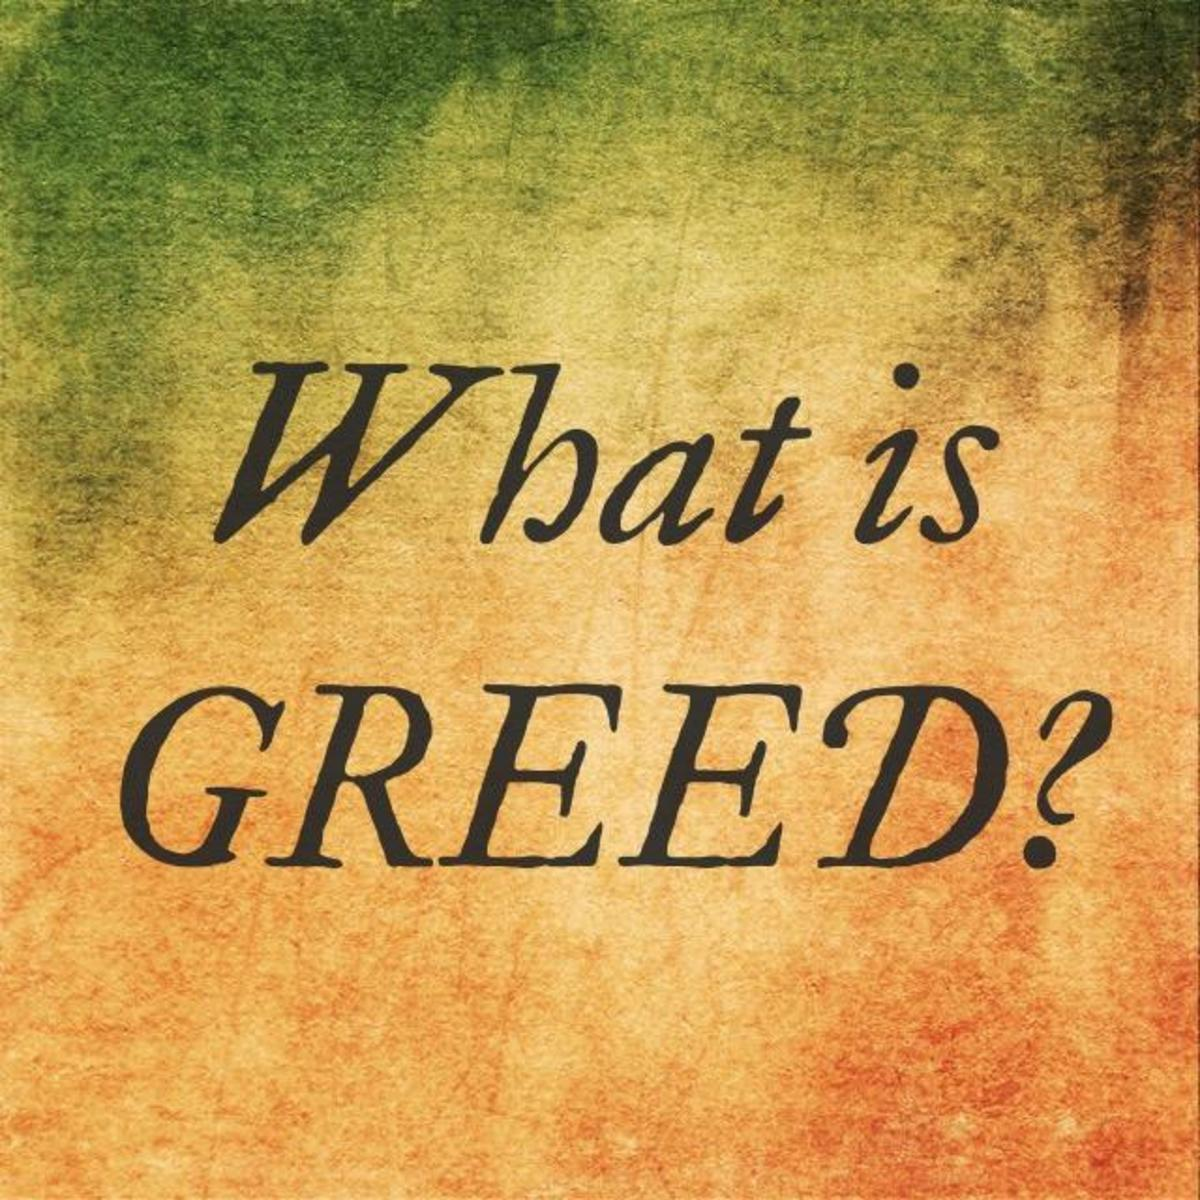 What the Bible Says About Greed